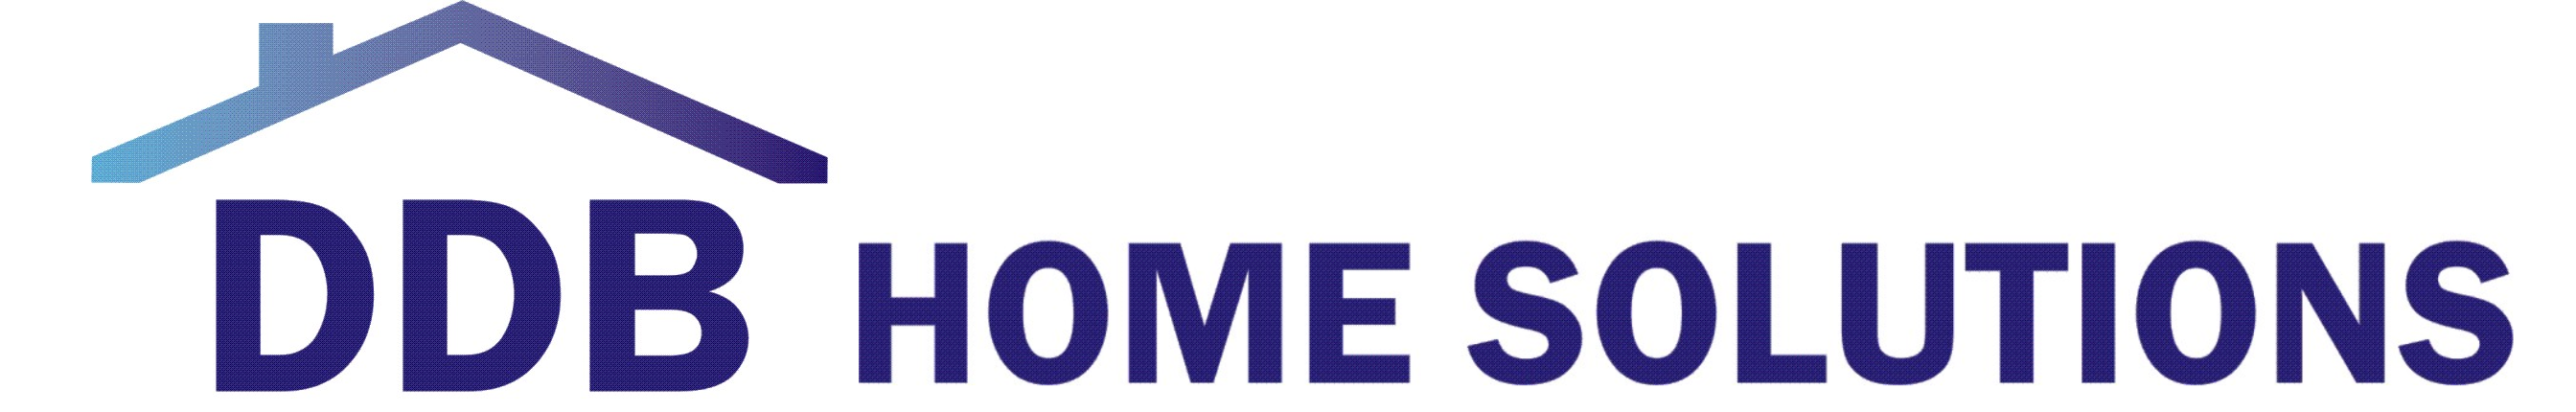 DDB Home Solutions